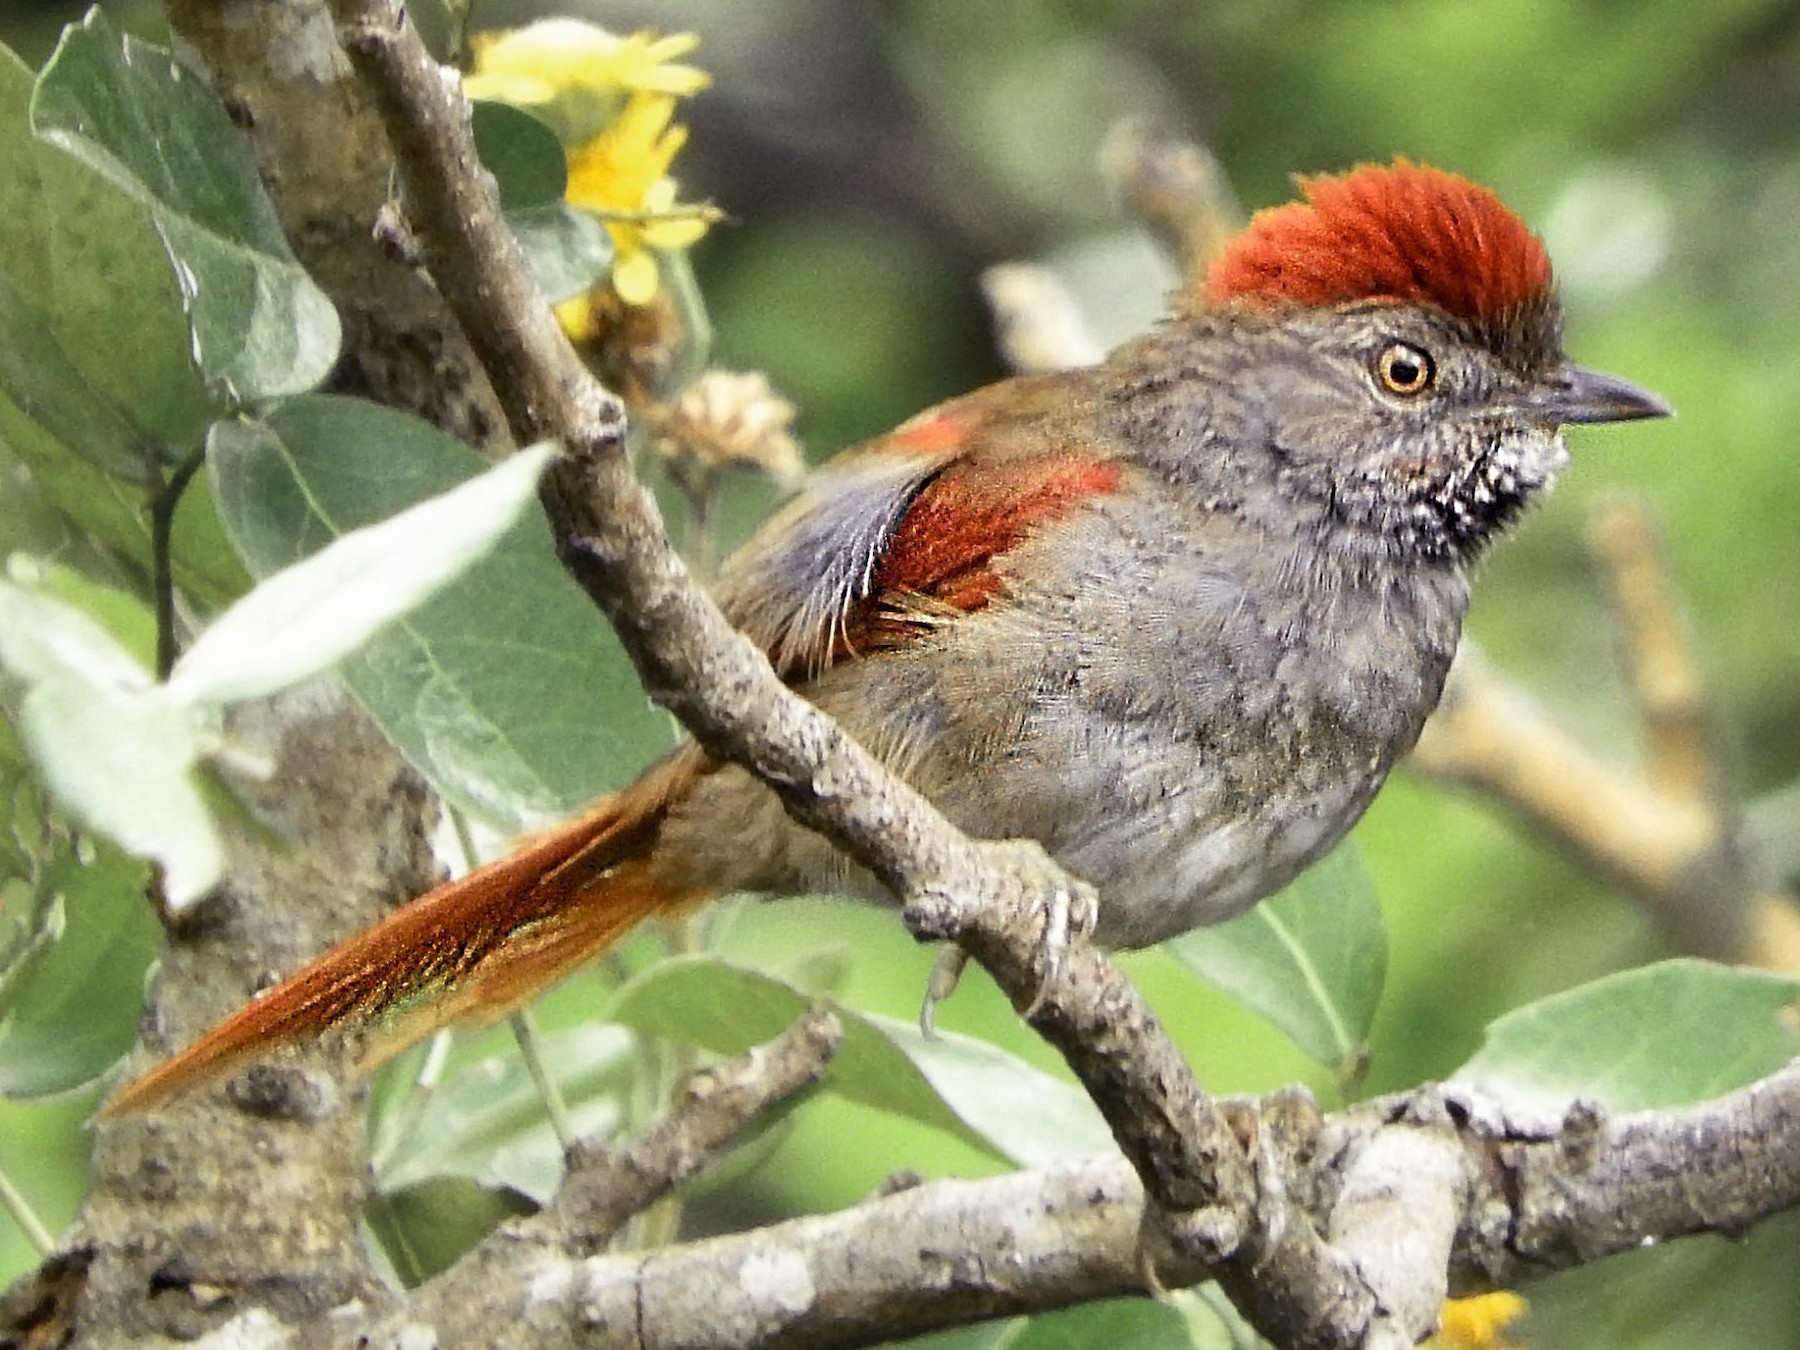 Sooty-fronted Spinetail - Leandro Bareiro Guiñazú